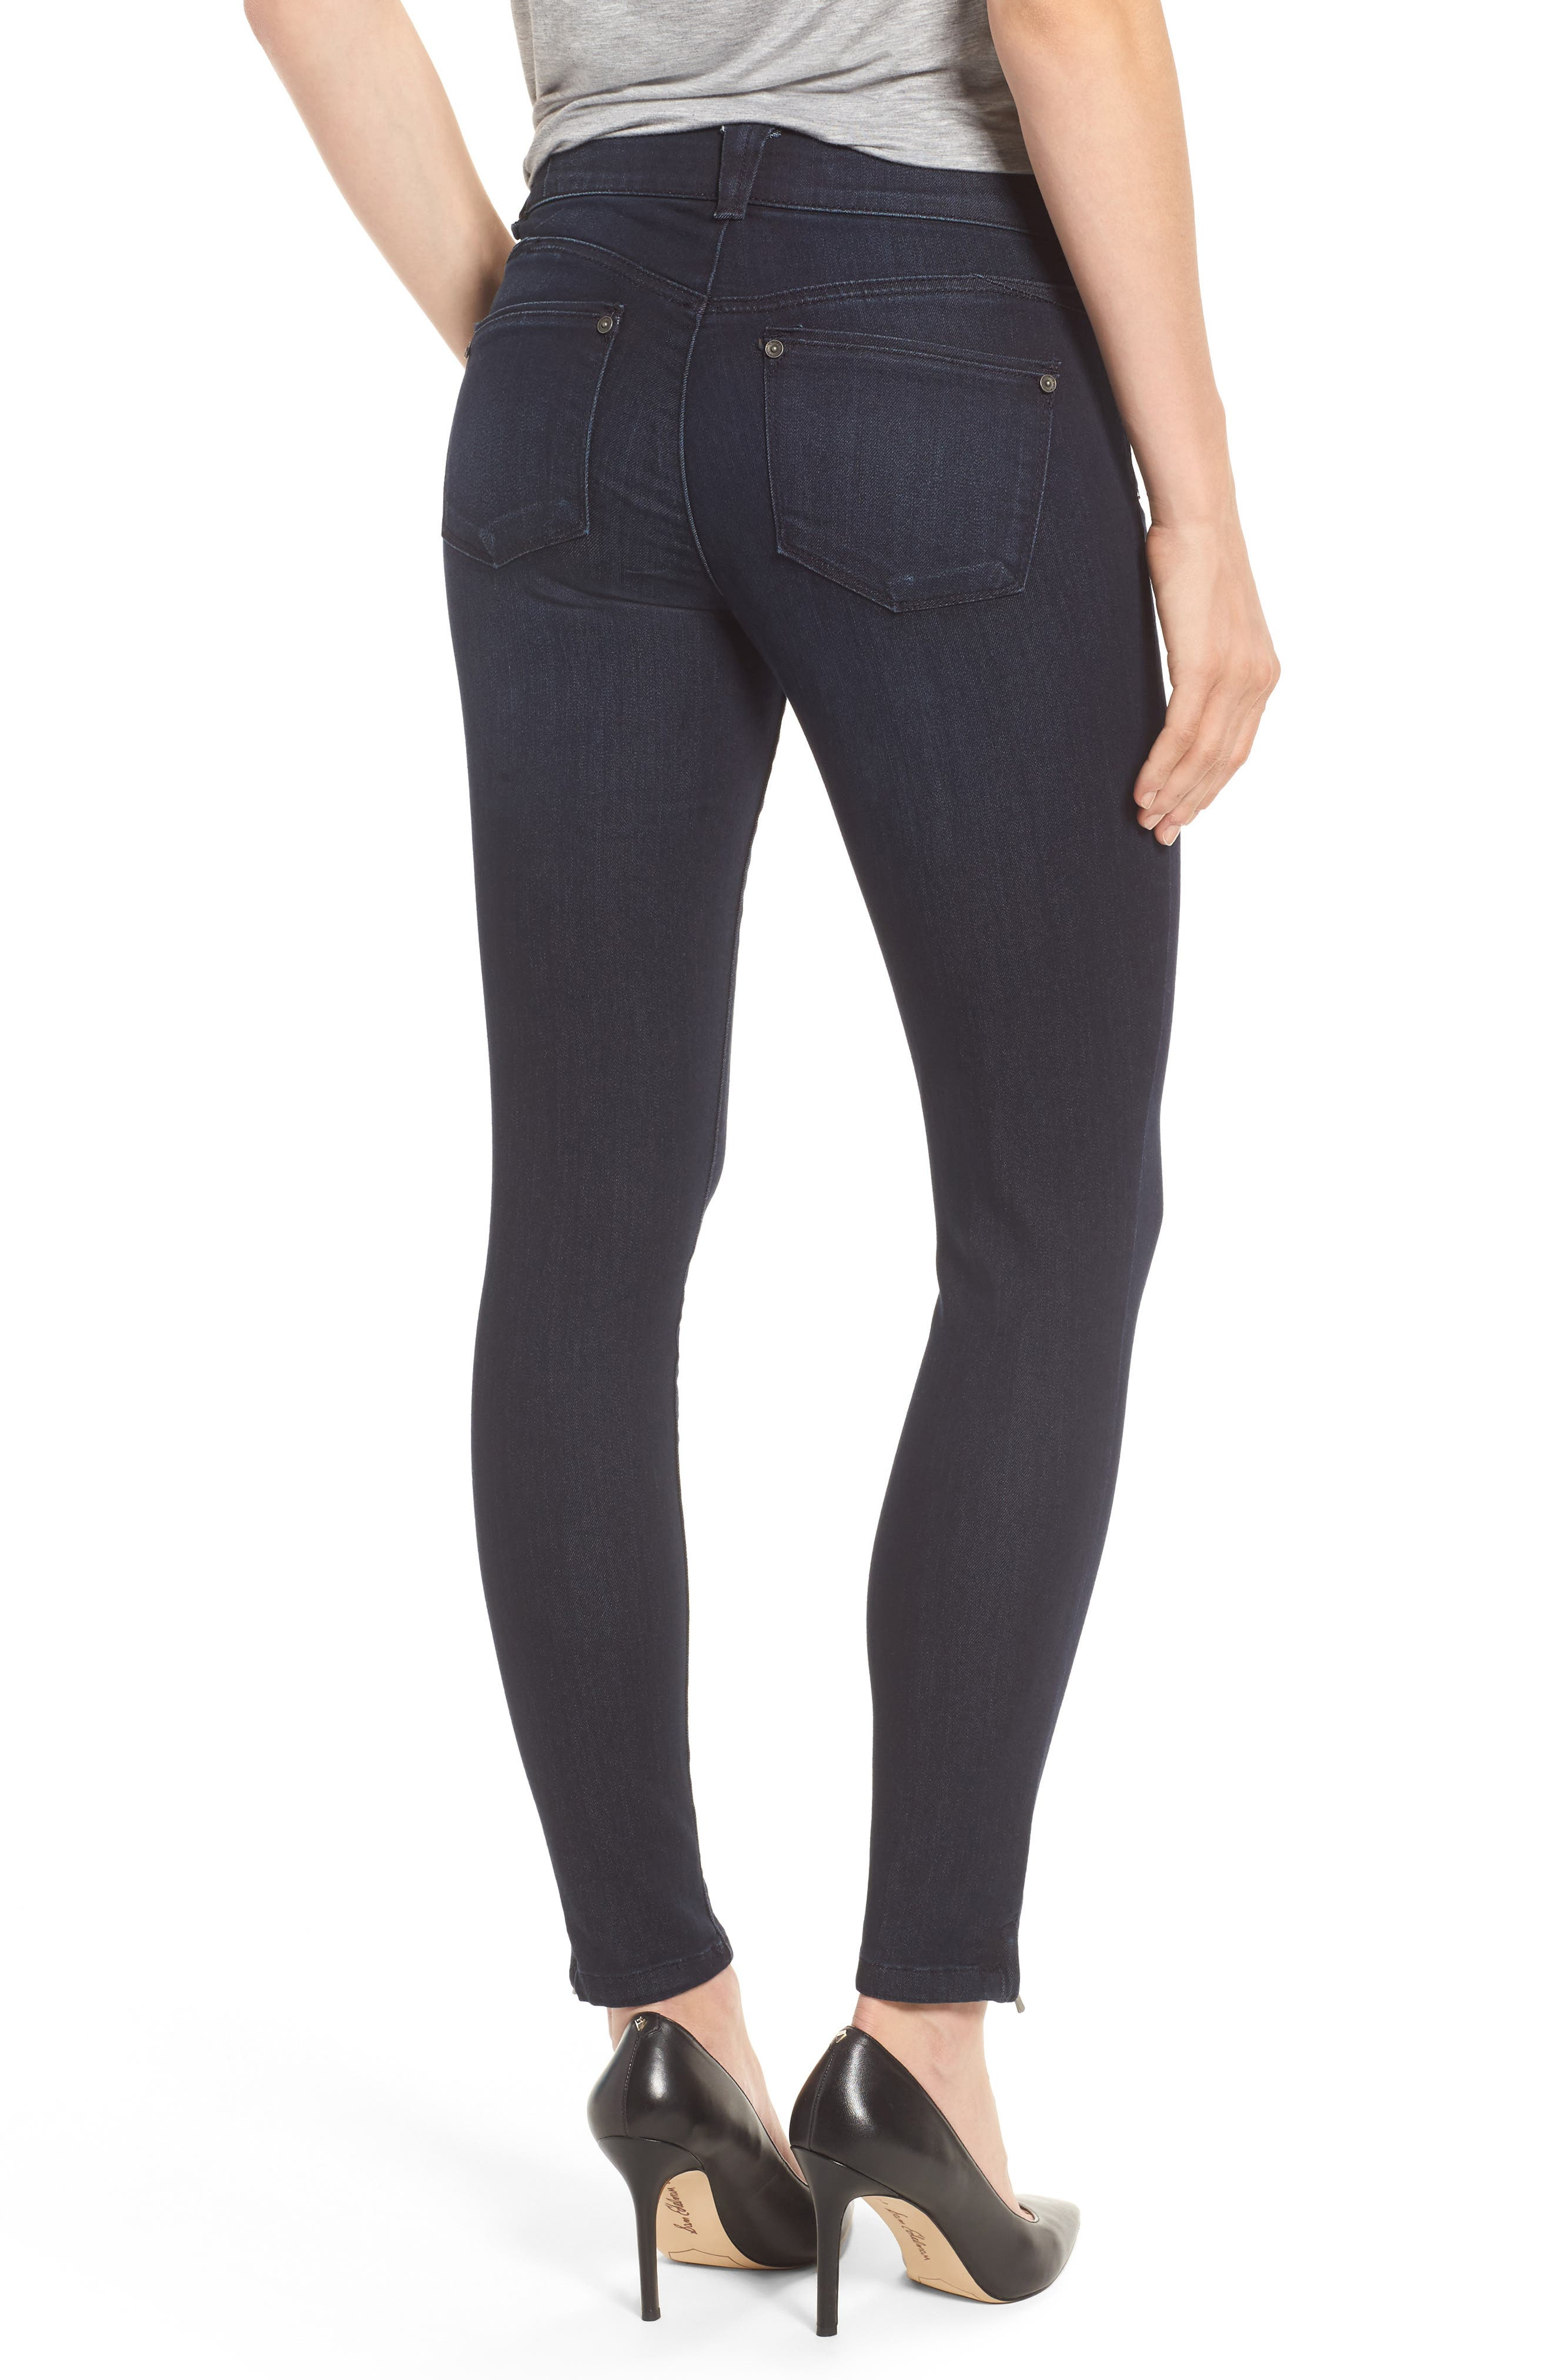 Ab-solution Ankle Zip Skinny Jeans,                             Alternate thumbnail 2, color,                             410